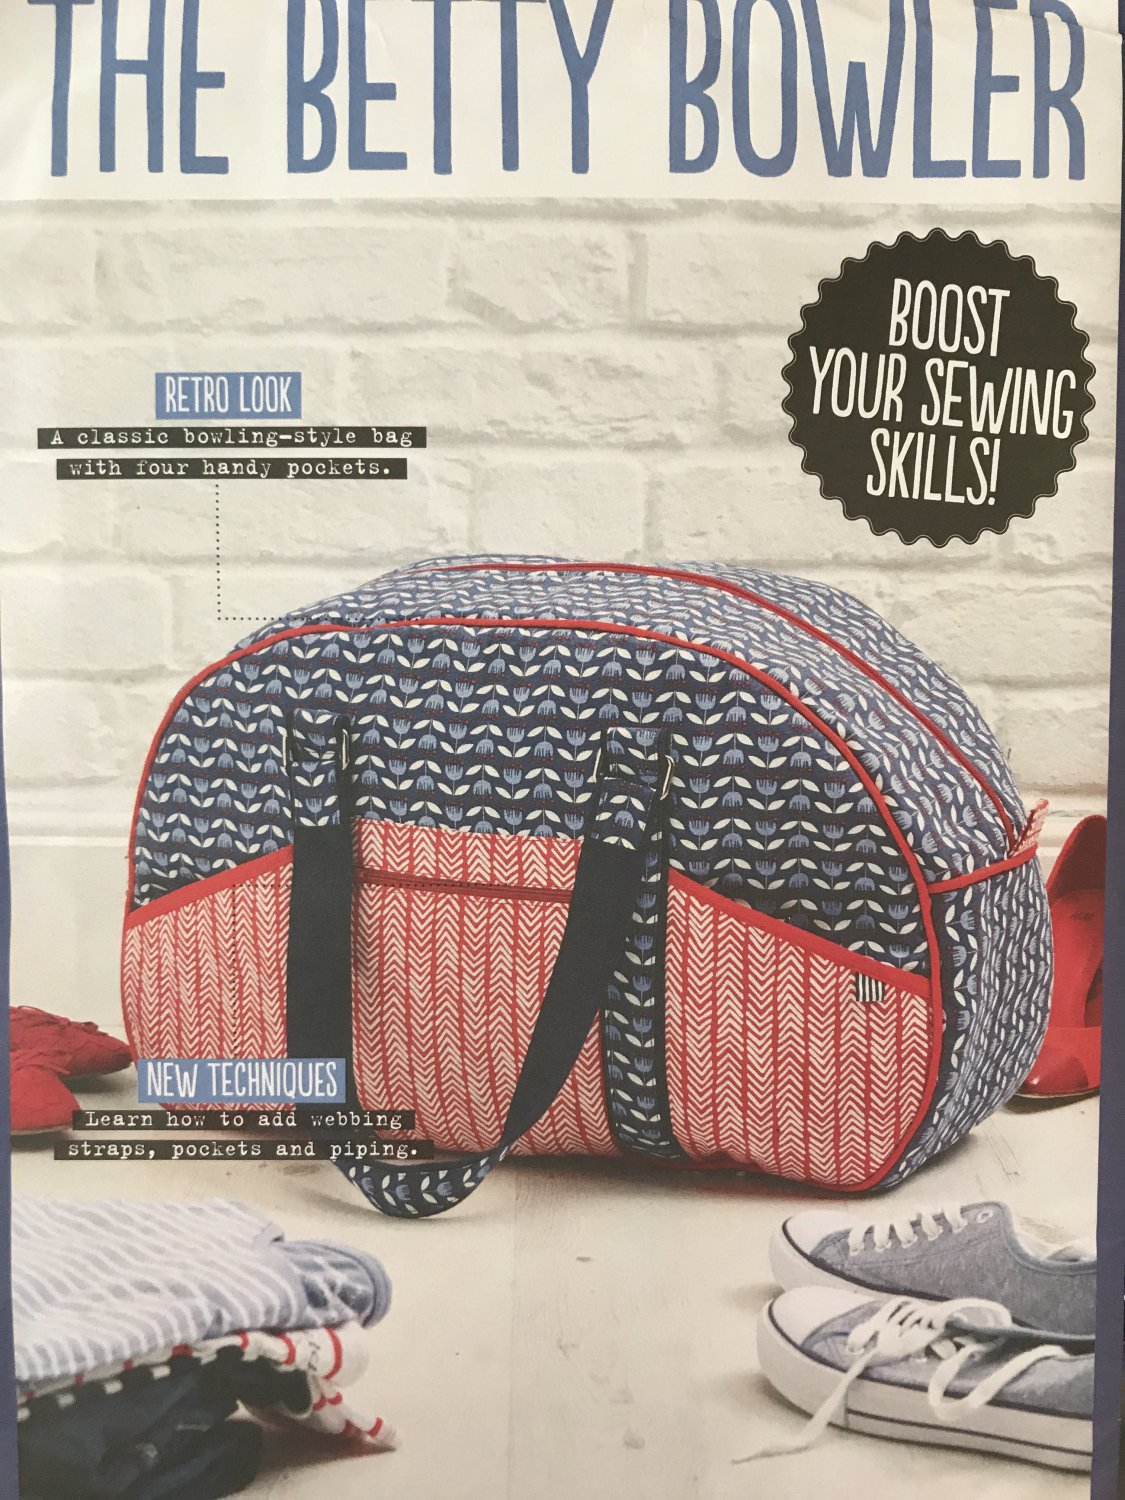 The Betty Bowler Retro Look bowling-style bag Simply Sewing Pattern uncut.